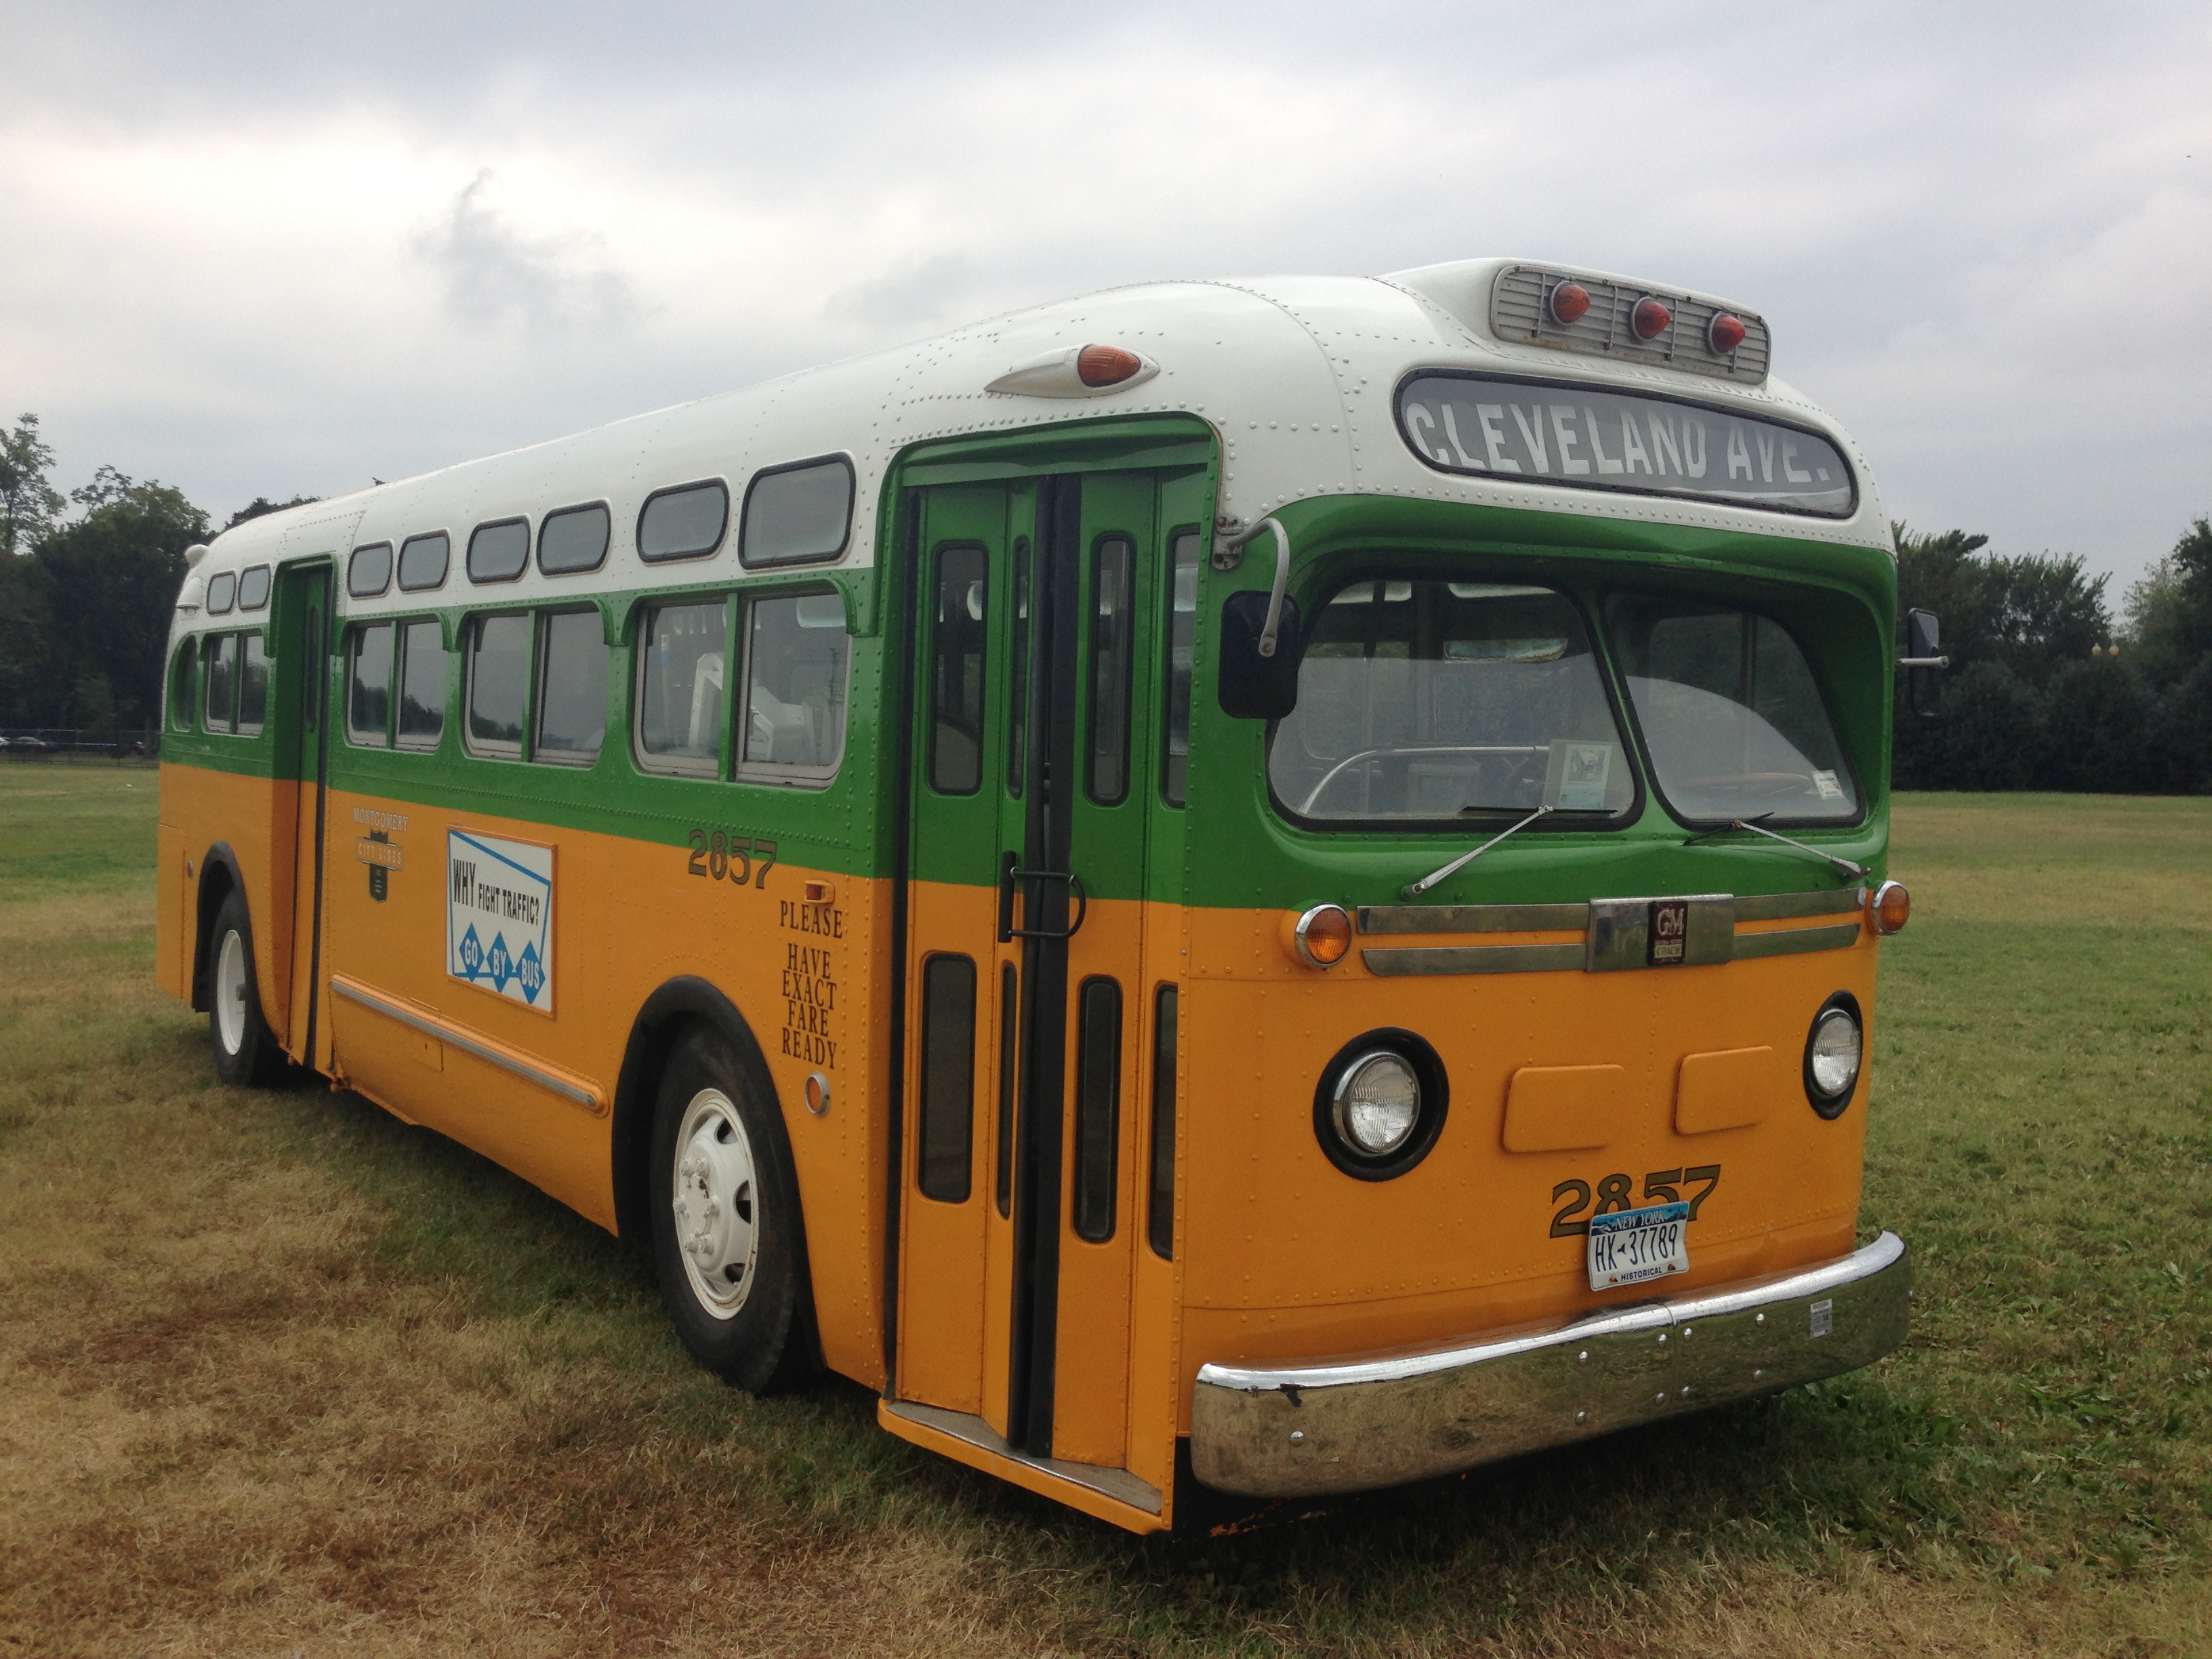 Rosa Park's Bus, March on Washington